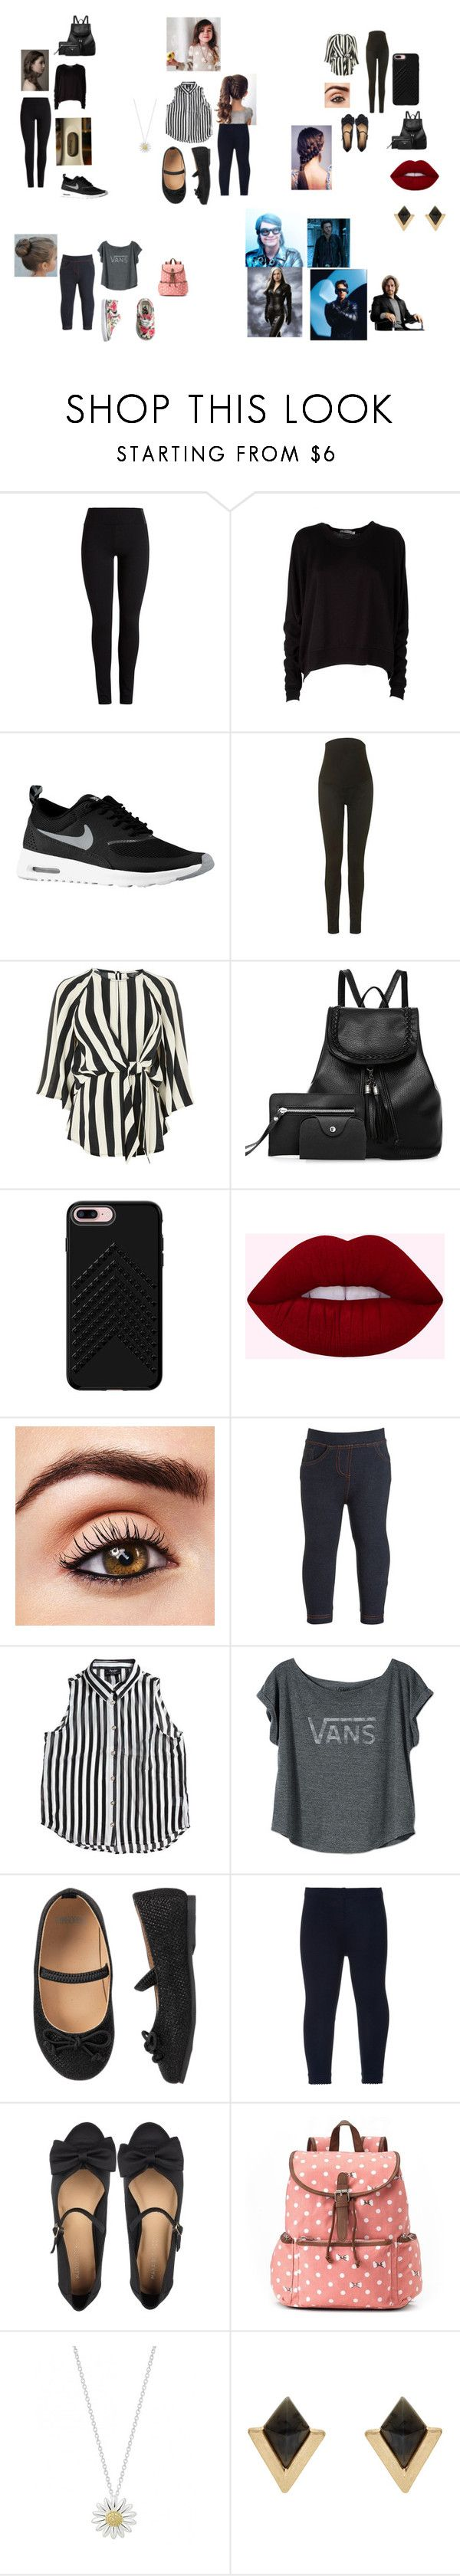 """Charles PT.7"" by lauren-371 ❤ liked on Polyvore featuring T By Alexander Wang, NIKE, Topshop, Rebecca Minkoff, Monsoon, Bardot Junior, Vans, Marais USA, Candie's and Daisy Jewellery"